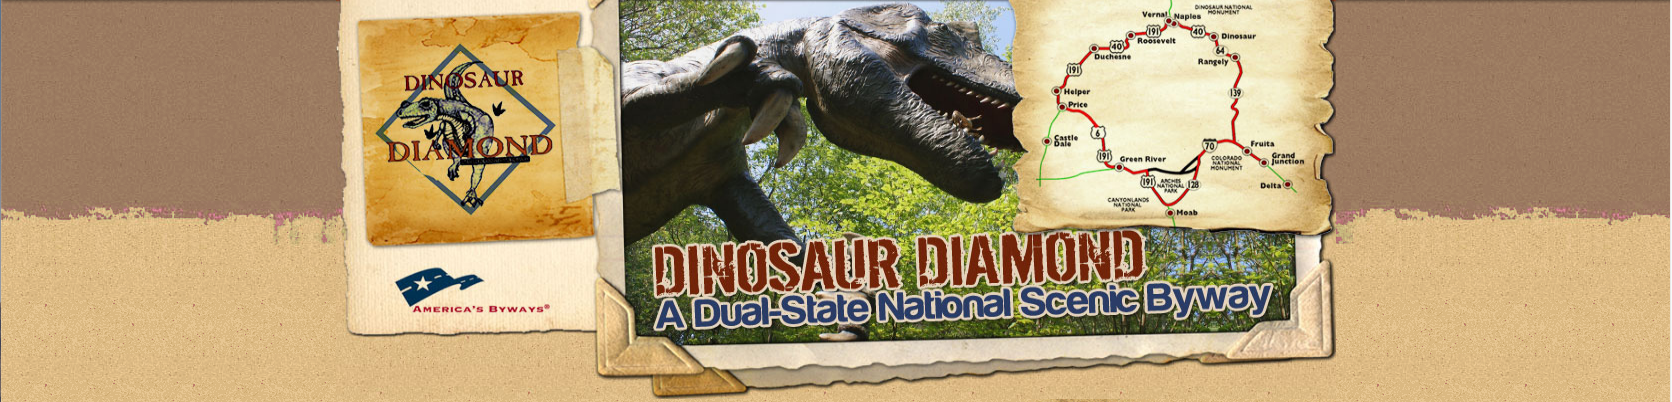 Dinosaur-Diamond-Byway.png